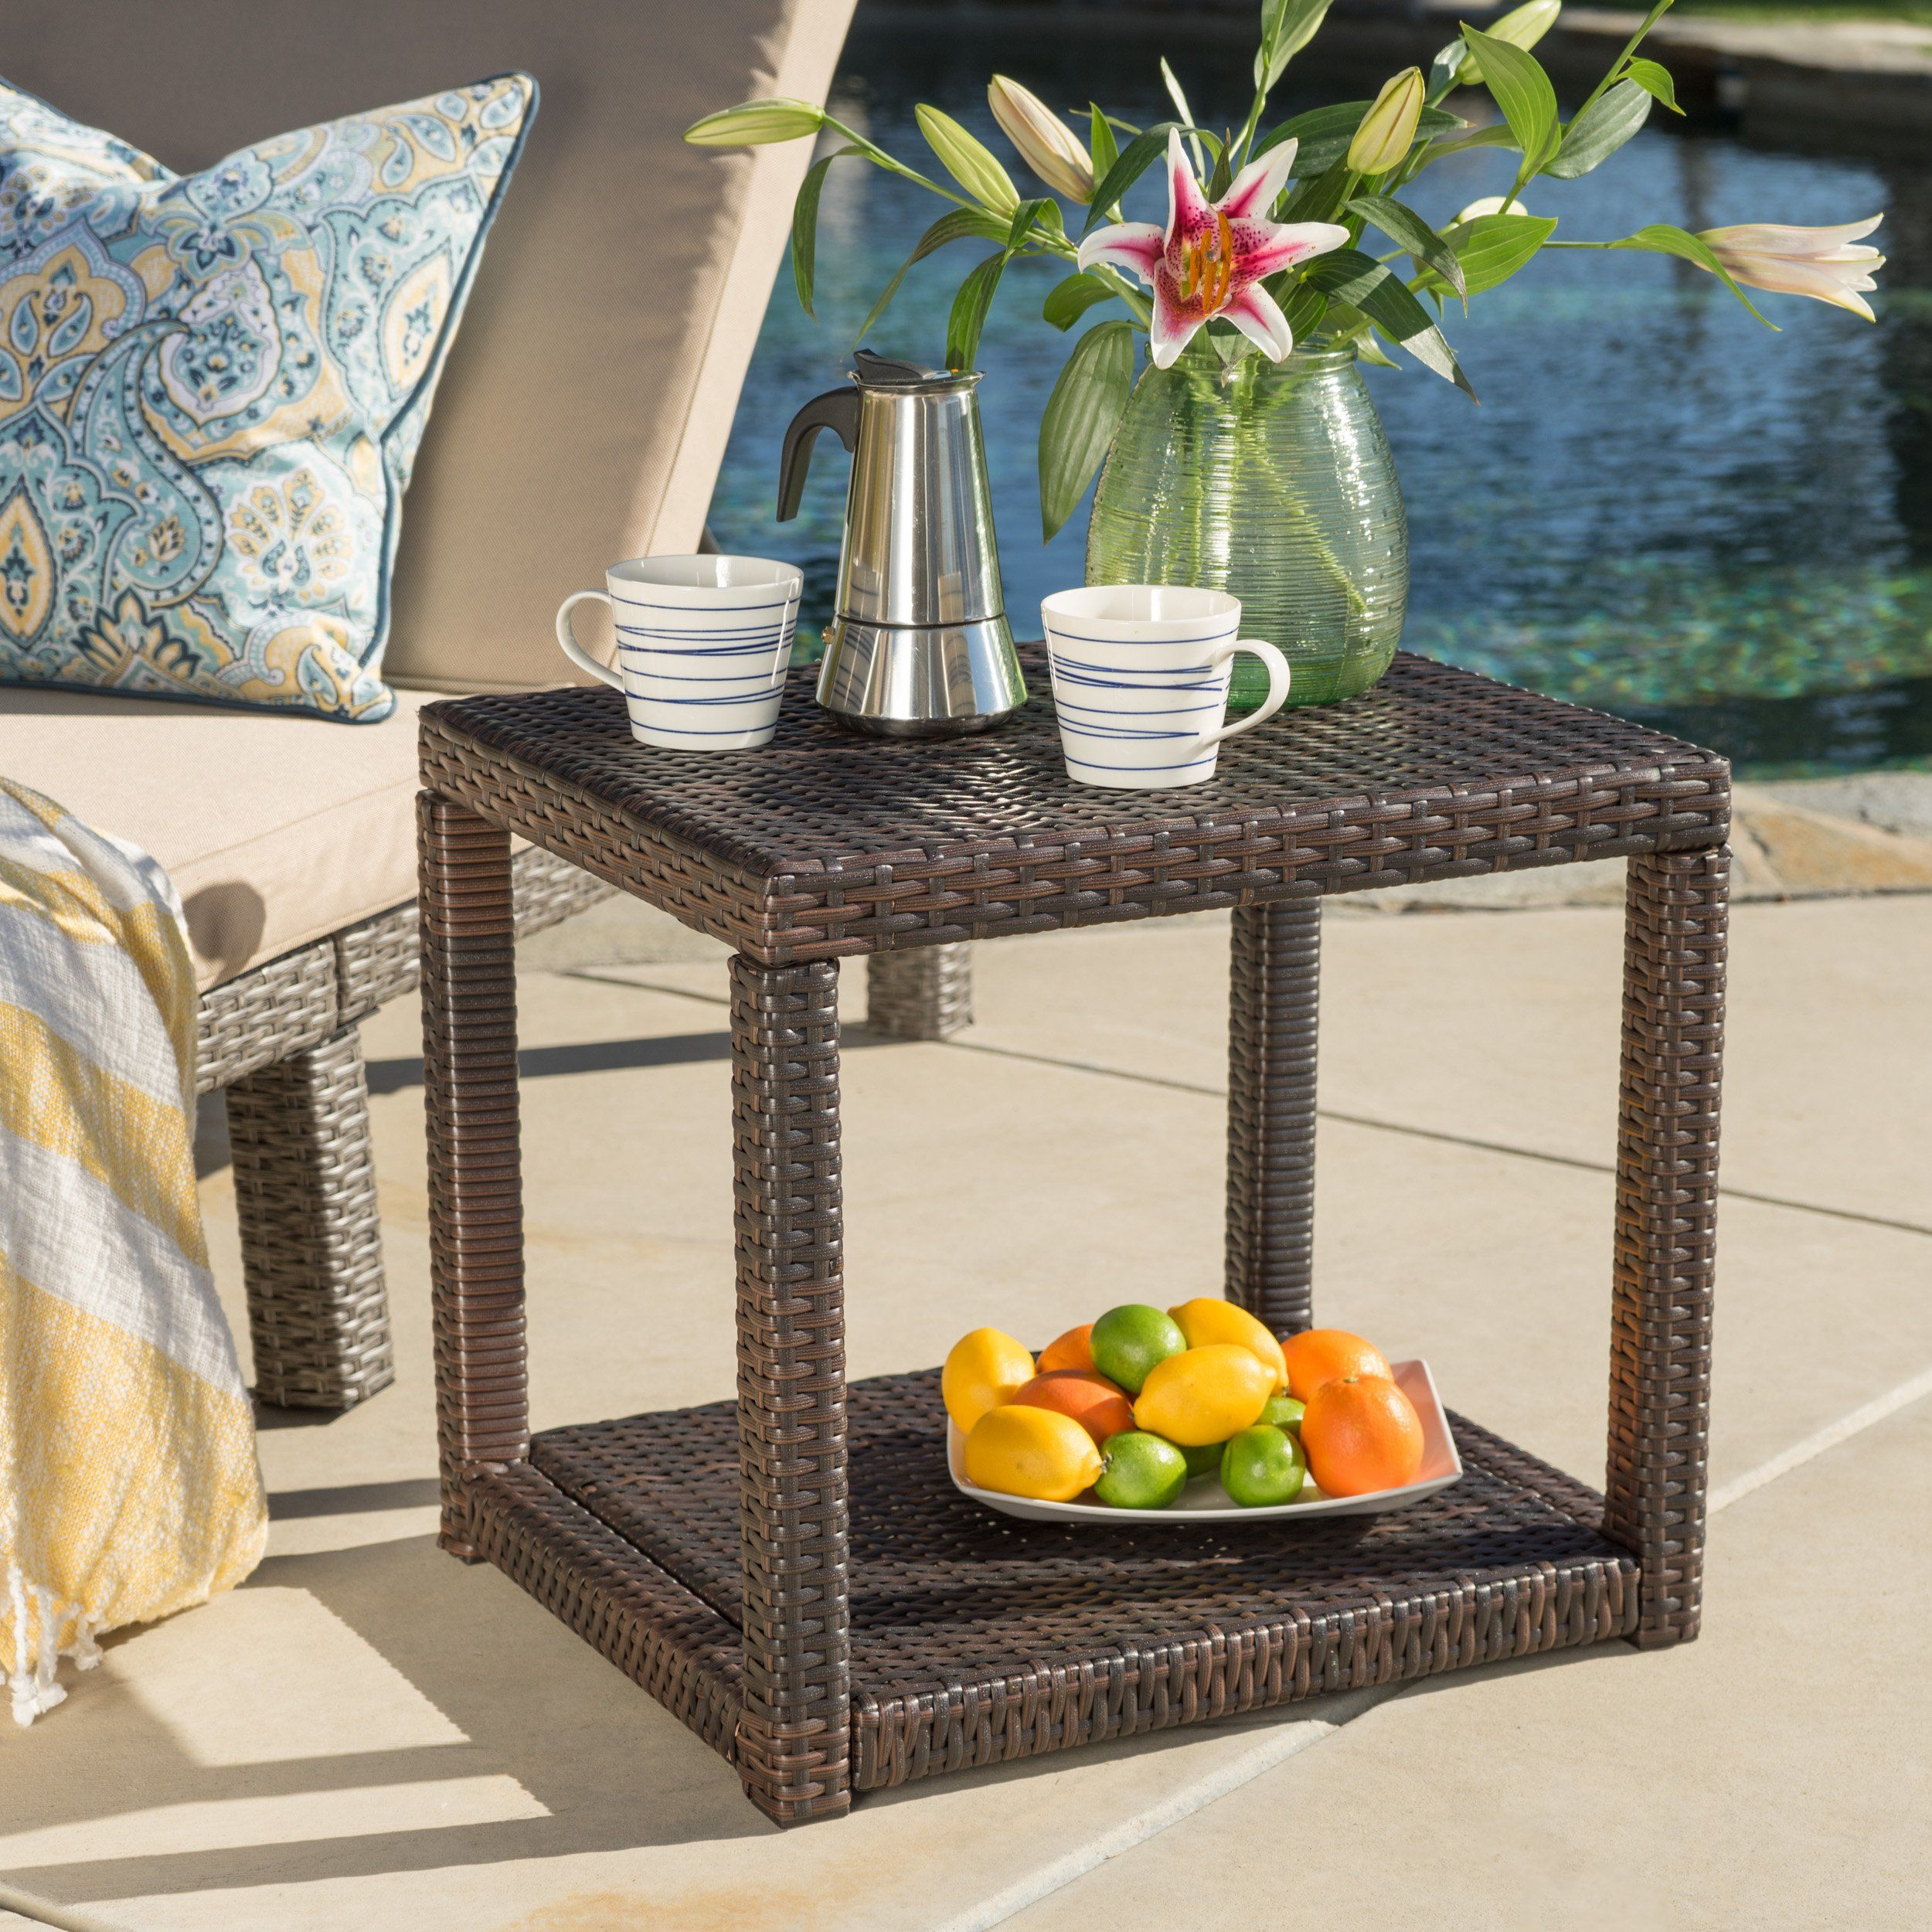 palawan outdoor wicker accent table products threshold umbrella dining mats teal accents lamps for living room traditional nautical bedroom furniture white ginger jar lamp base